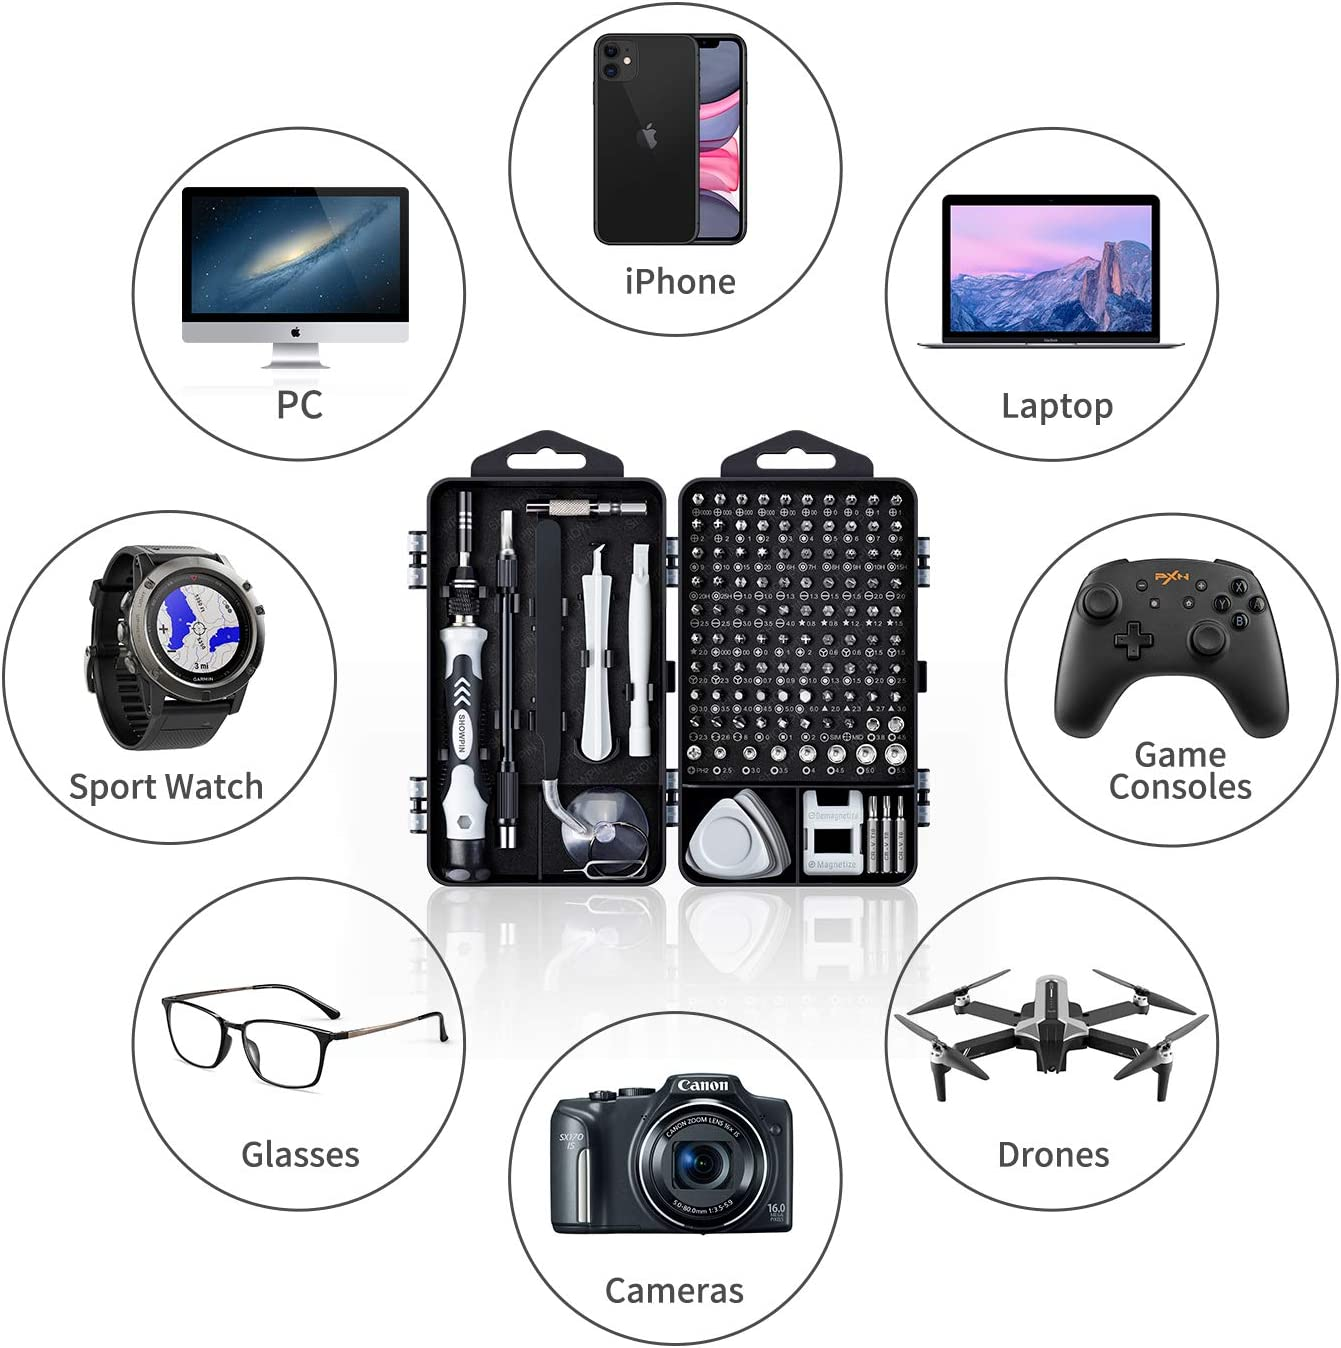 Computer Repair Kit, 122 in 1 Magnetic Laptop Screwdriver Kit, Precision Screwdriver Set, Small Impact Screw Driver Set with Case for Computer, Laptop, PC, for iPhone, Watch, Ps4 DIY Hand Tools -Grey: Computers & Accessories